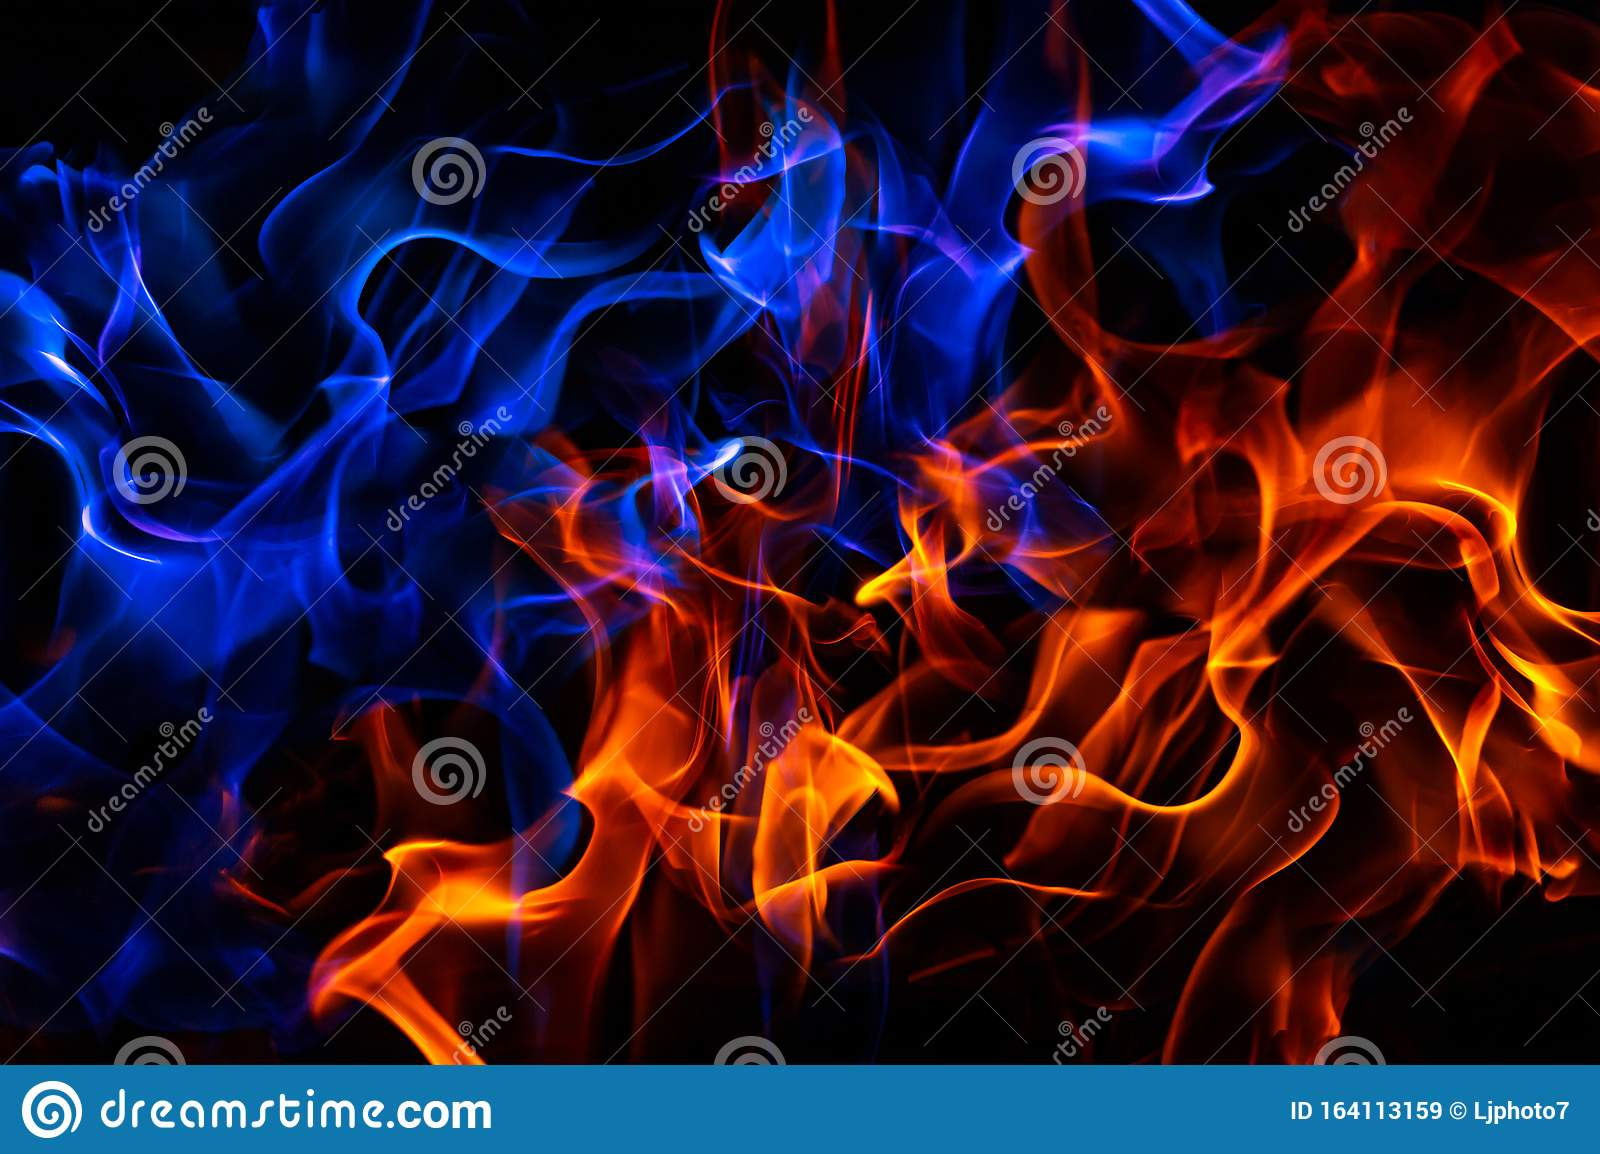 Red And Blue Fire On Balck Background Stock Image Image Of Curl Dangerous 164113159